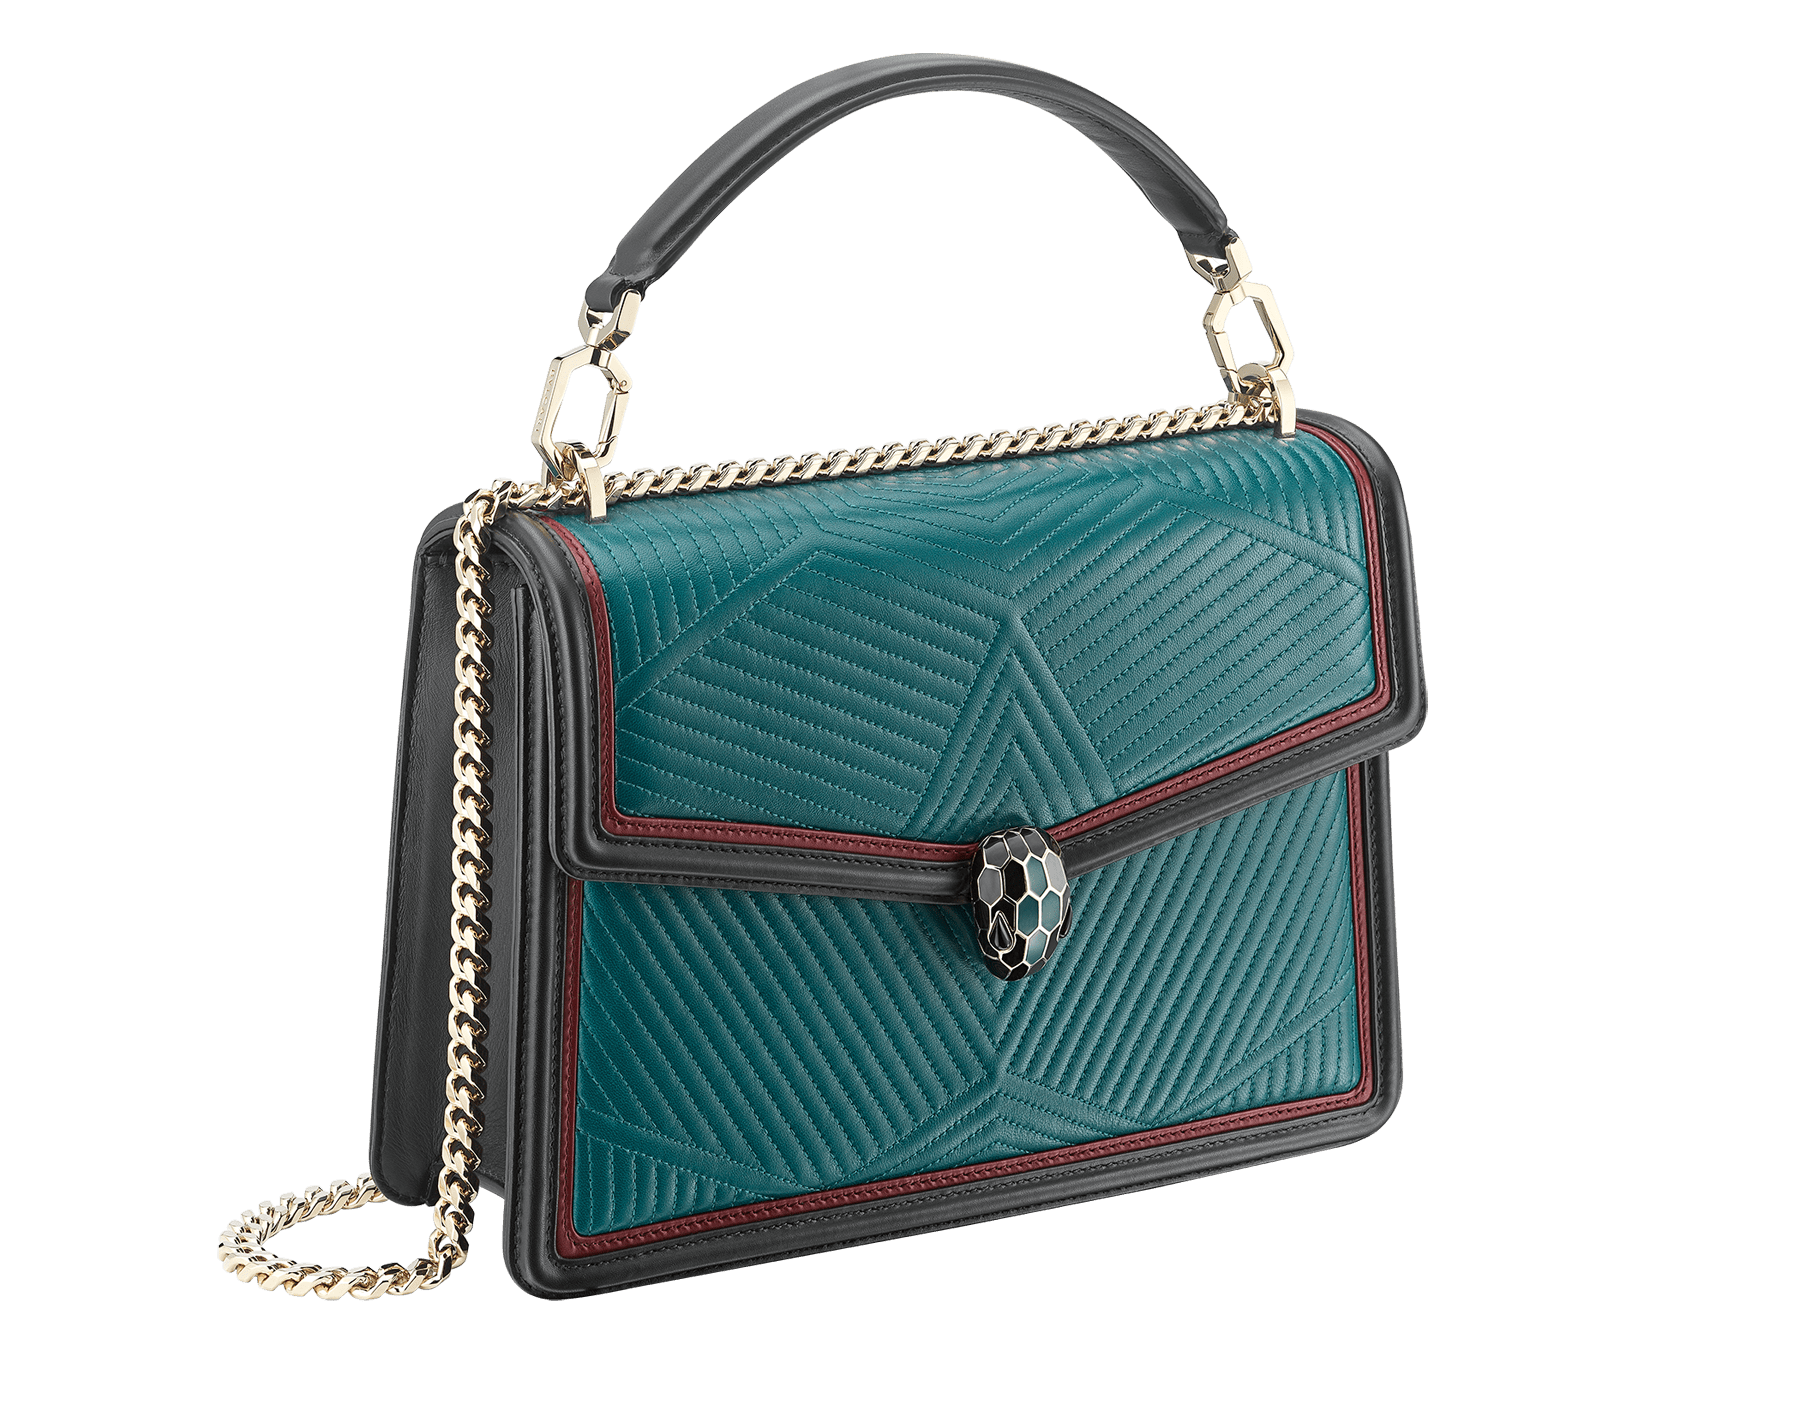 """Serpenti Diamond Blast"" shoulder bag in deep jade quilted nappa leather body and roman garnet and black calf leather frames. Iconic snakehead closure in light gold plated brass enriched with deep jade and black enamel and black onyx eyes. 287973 image 2"